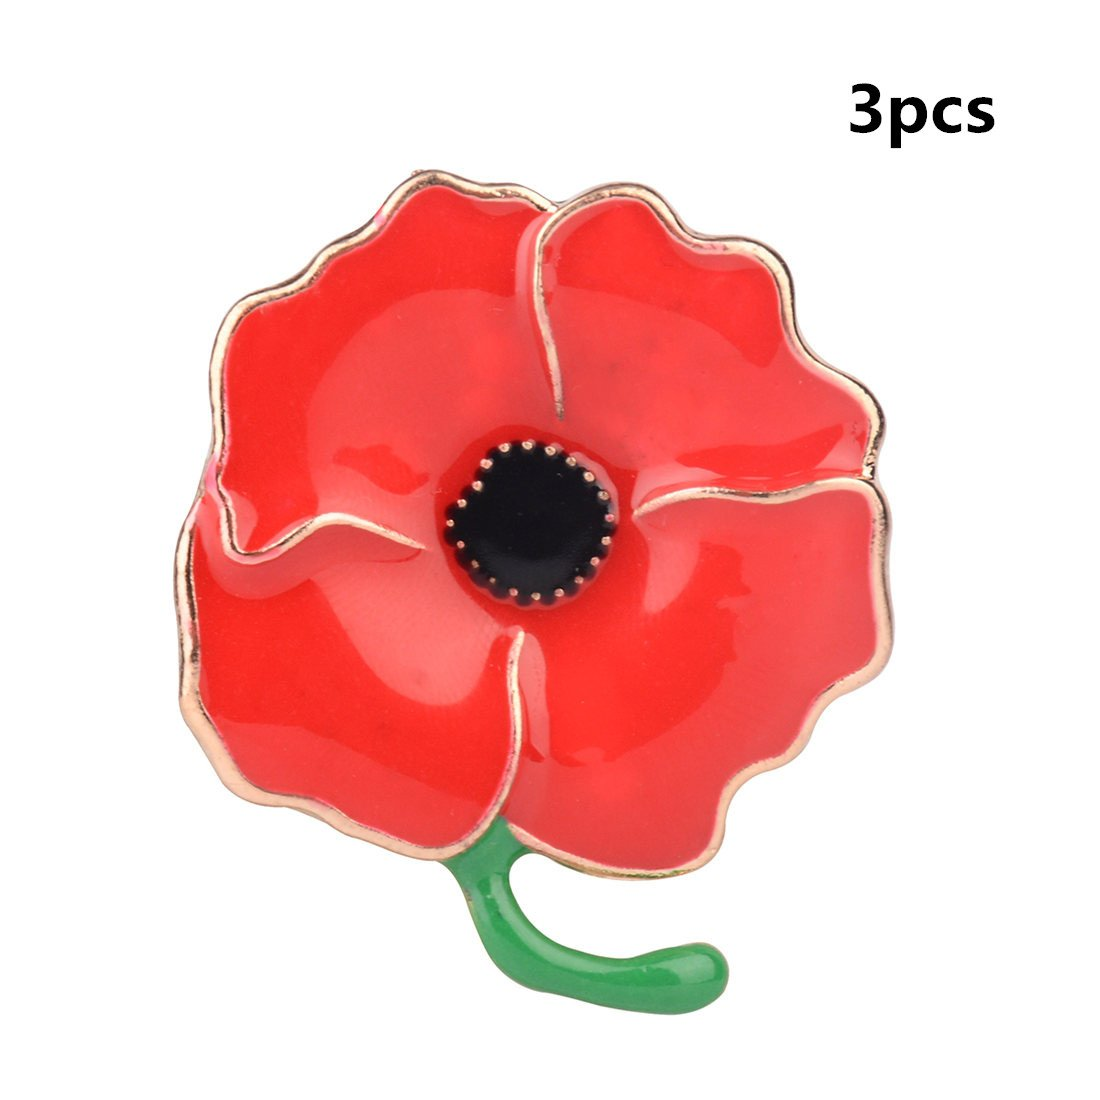 3 Pack Classic Red Poppy Flowers Brooch Pin Badge Glitter Soldier Enamel Lapel Plating Pin Gift for Remembrance Day HS Onsing